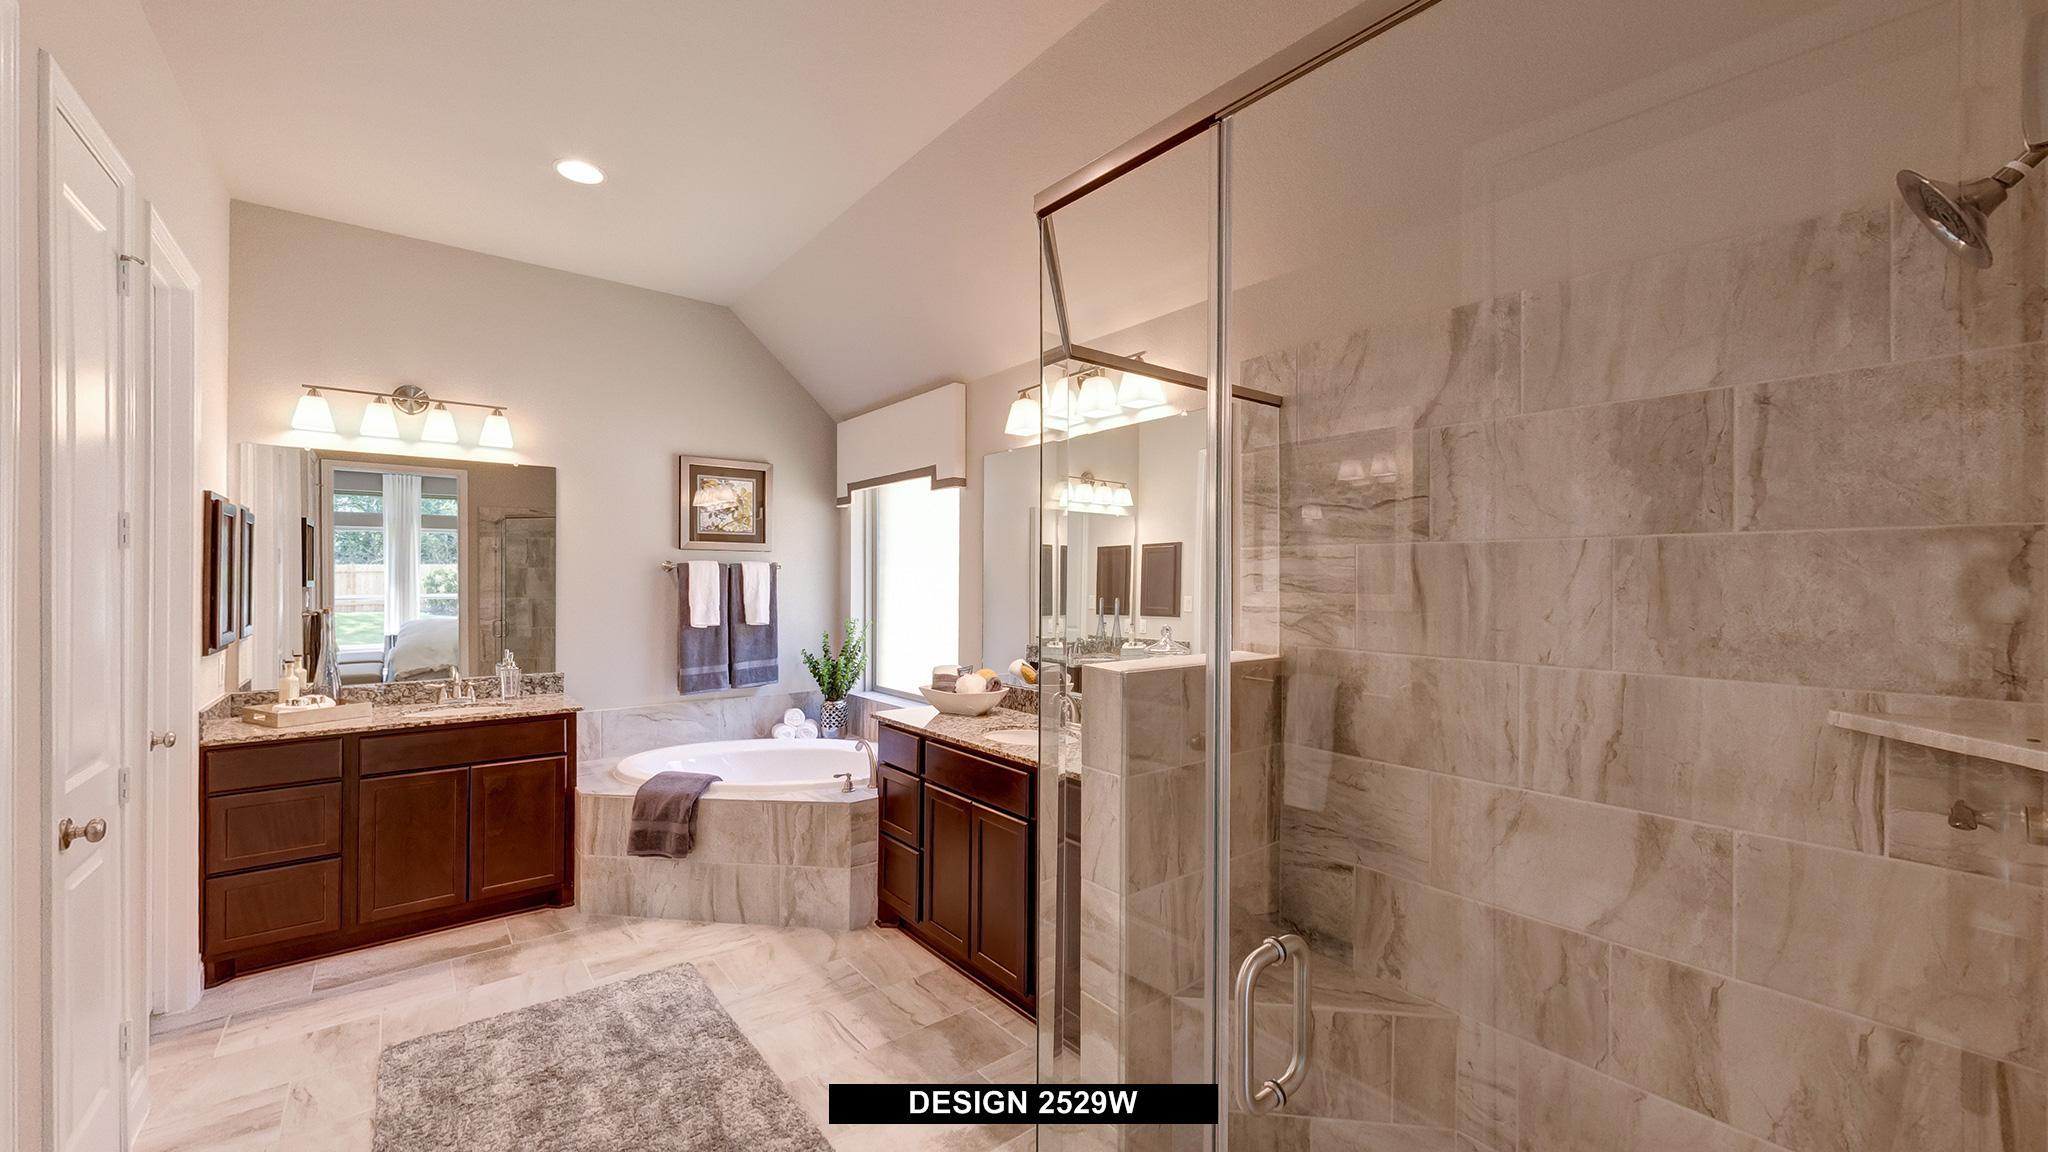 Bathroom featured in the 2529W By Perry Homes in San Antonio, TX